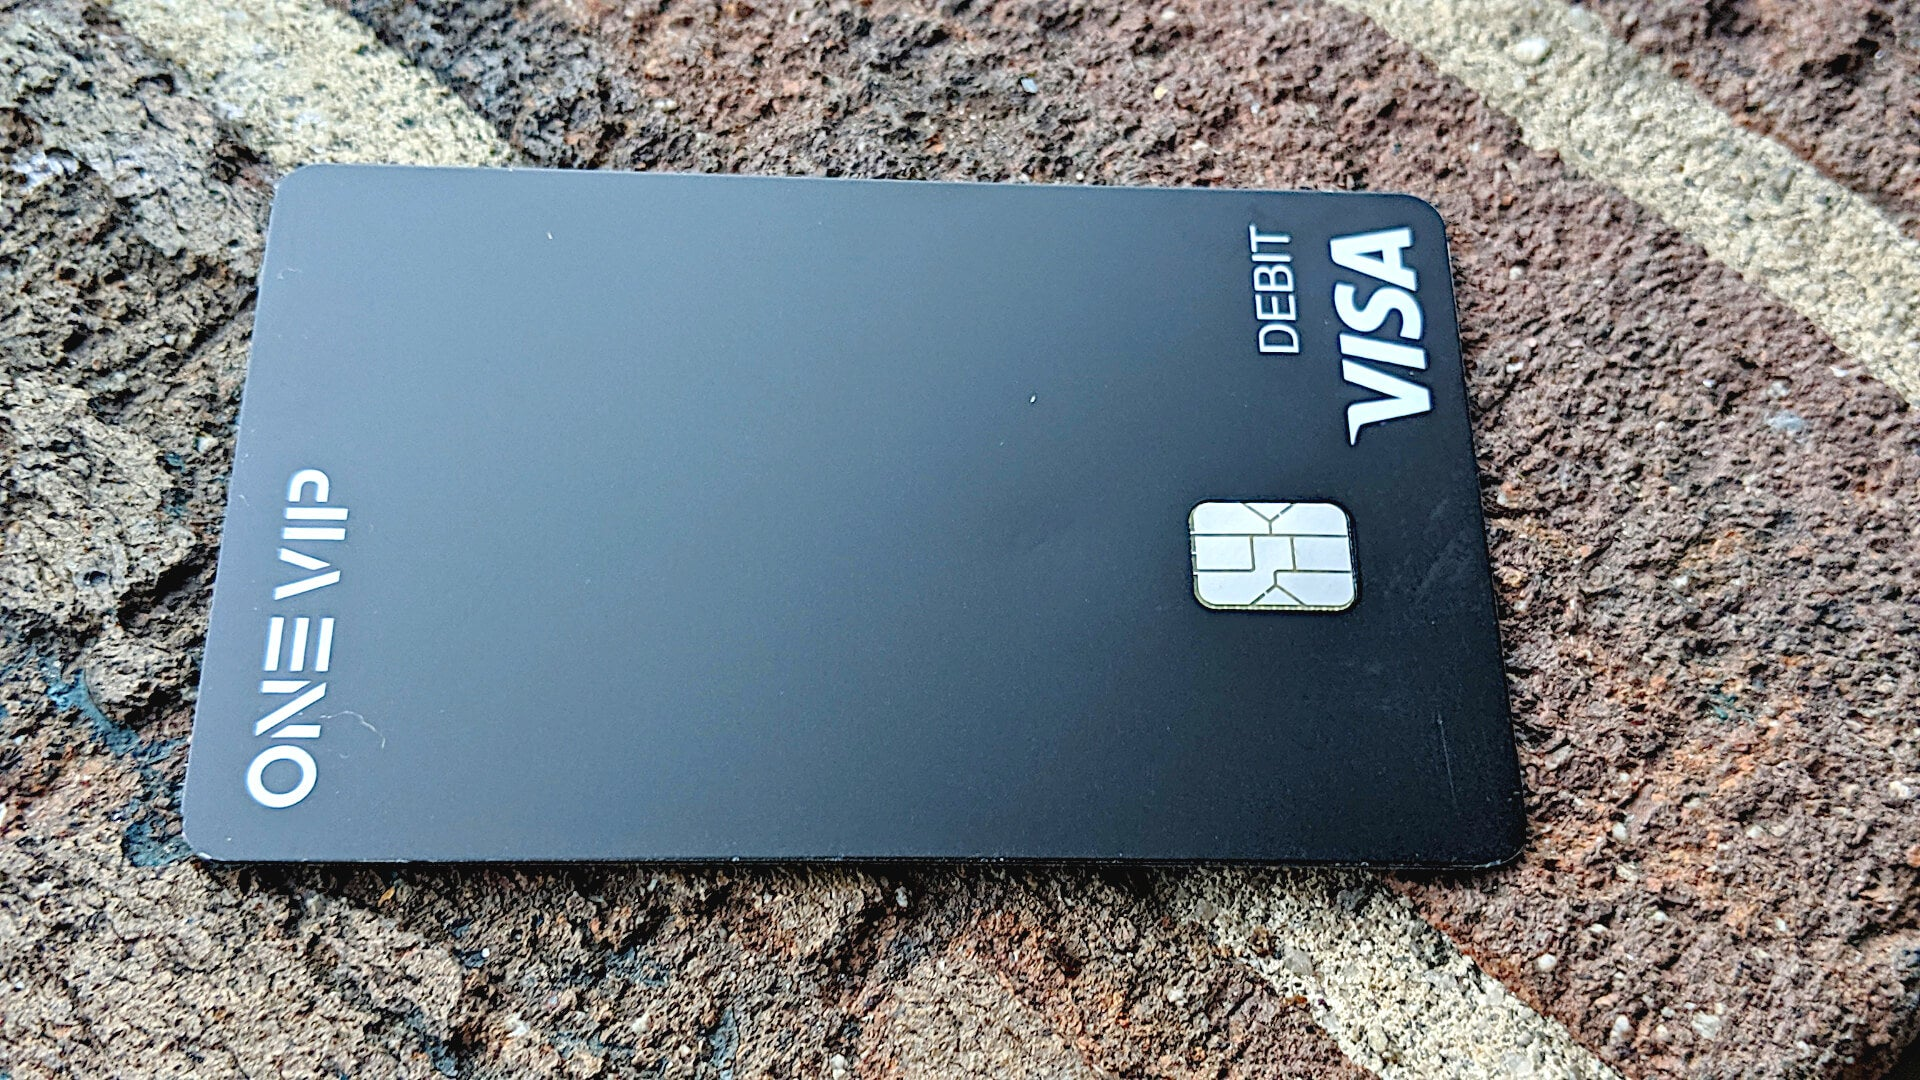 One VIP prepaid debit card